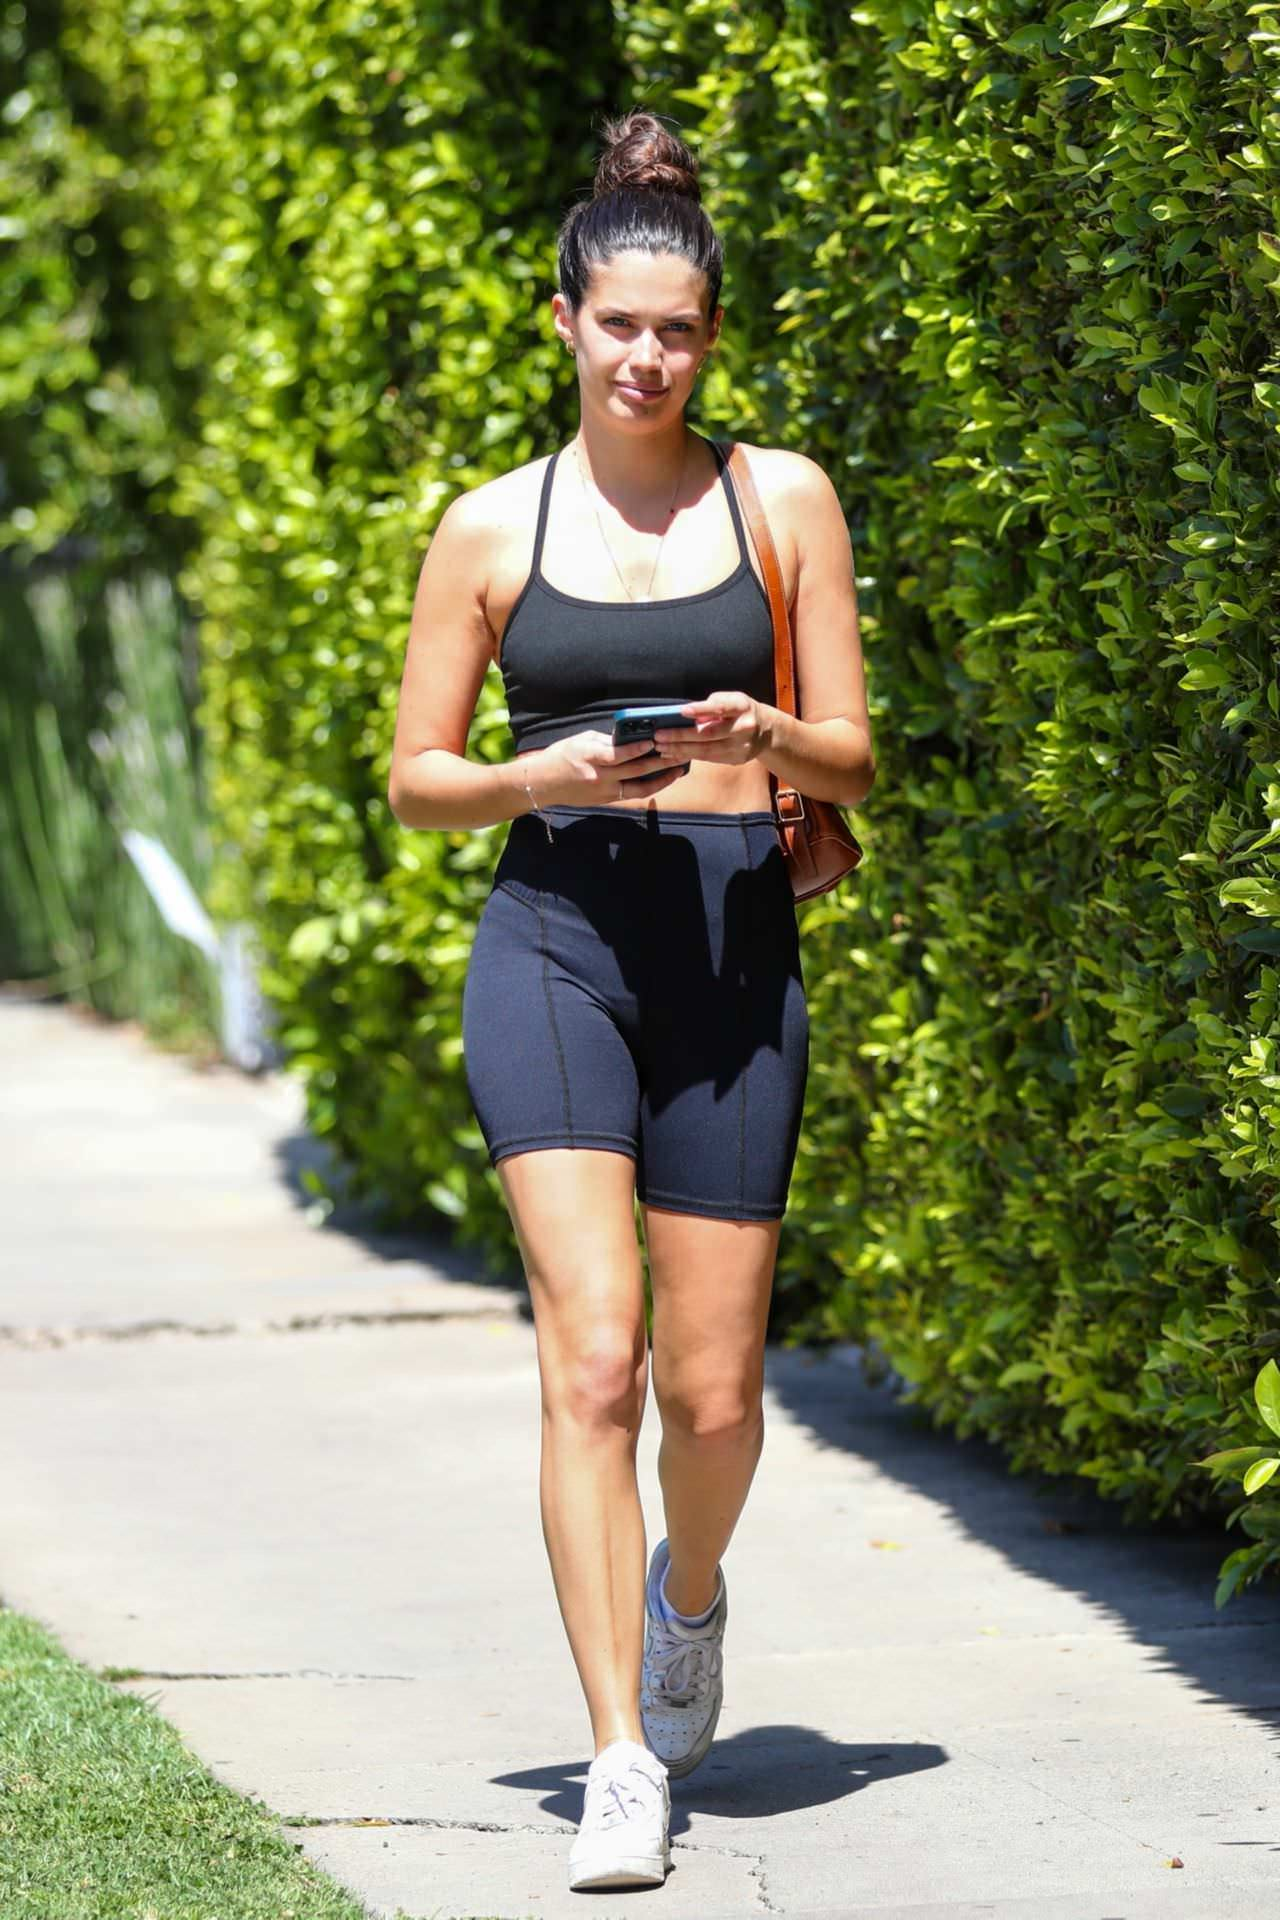 Sara Sampaio in Bicycle Shorts and Sports Bra in West Hollywood